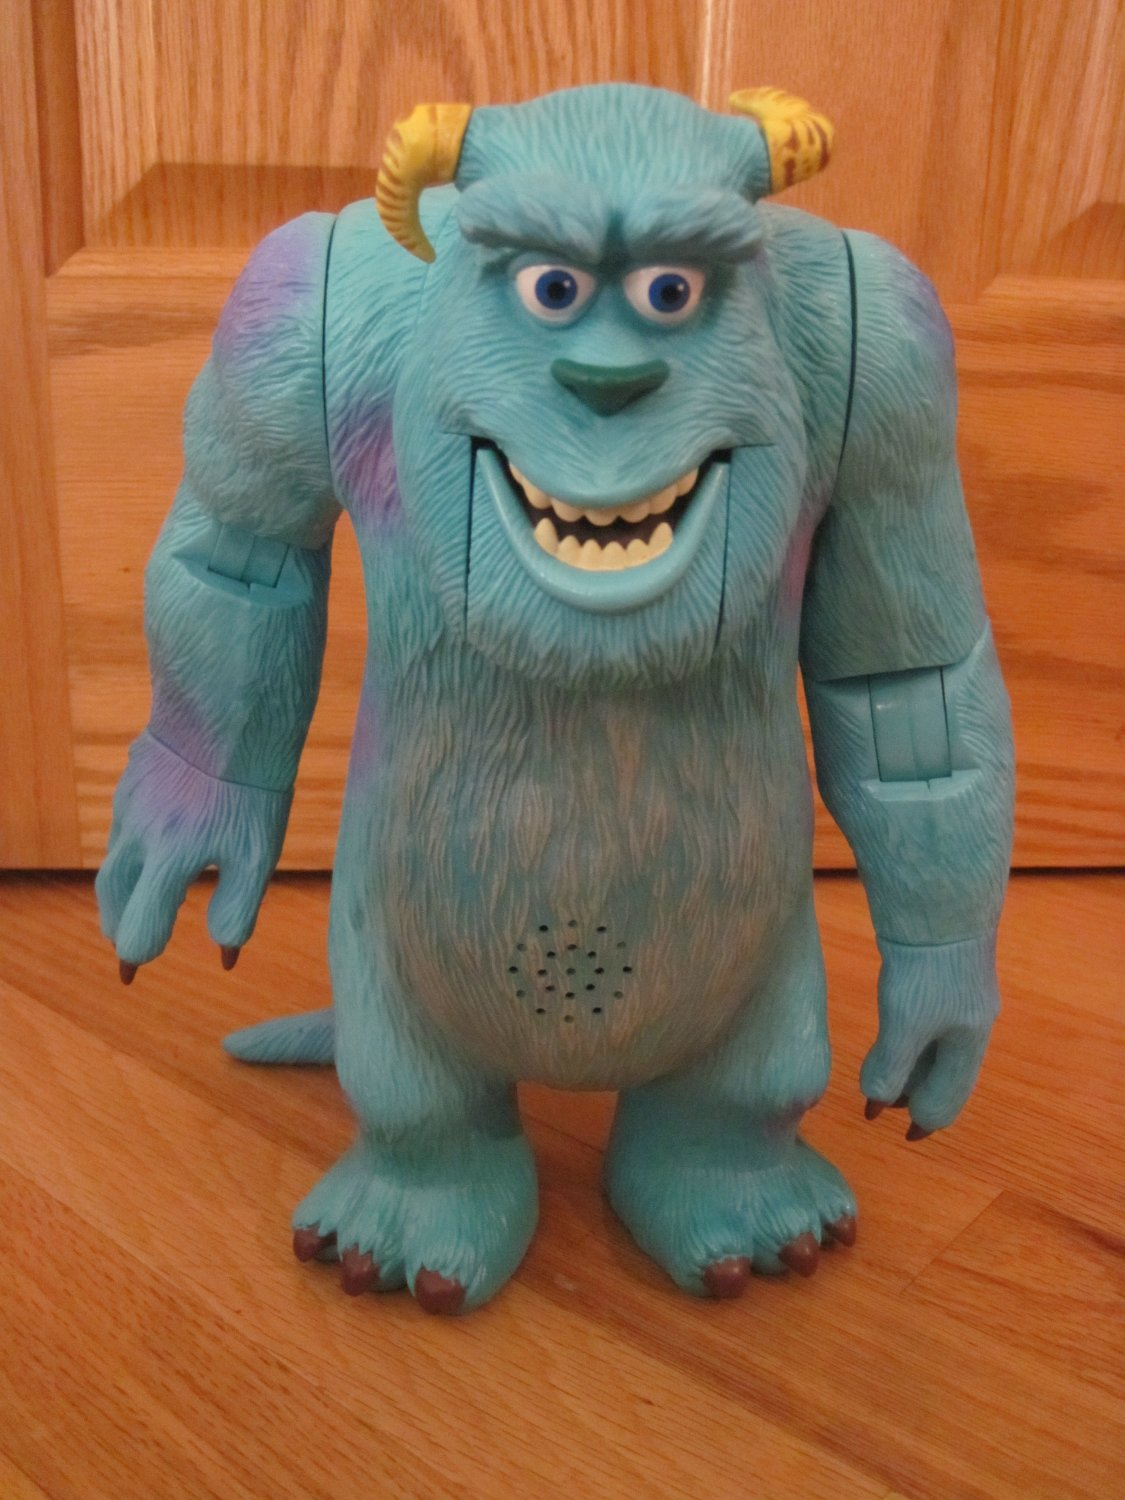 Disney Pixar Monsters Inc James P. Sullivan Super Scare Talking Sulley Moving Animated Toy